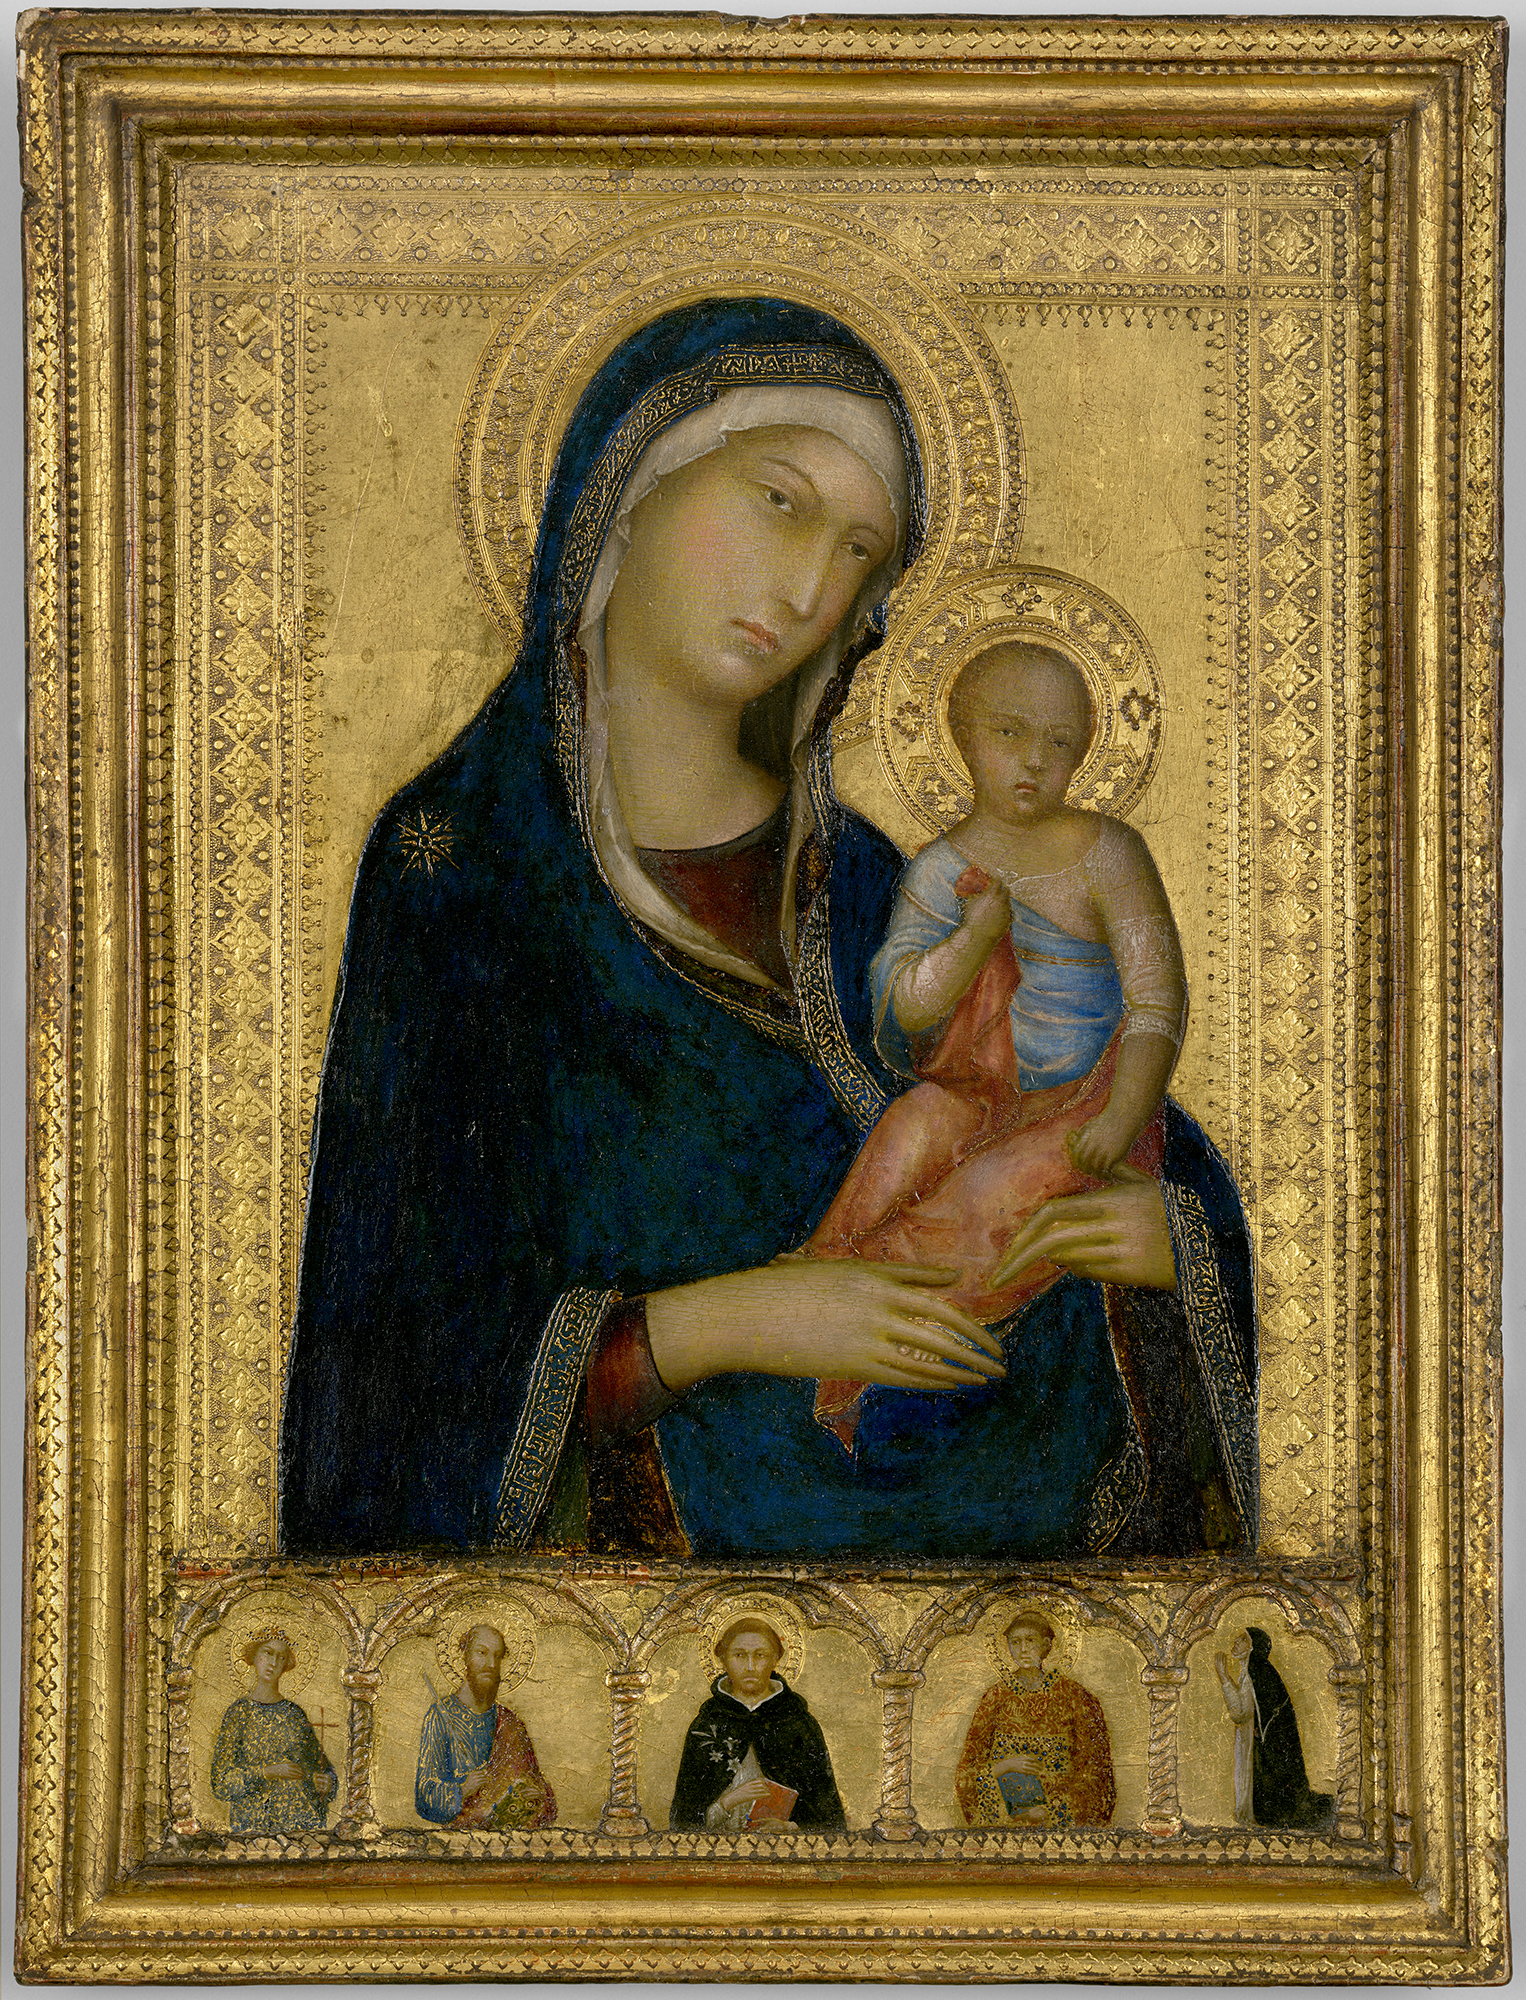 1325-Martini-Simone-The-Madonna-and-Child-with-Saints-and-a-Donor-Isabella-Stewart-Gardner-Museum-Boston